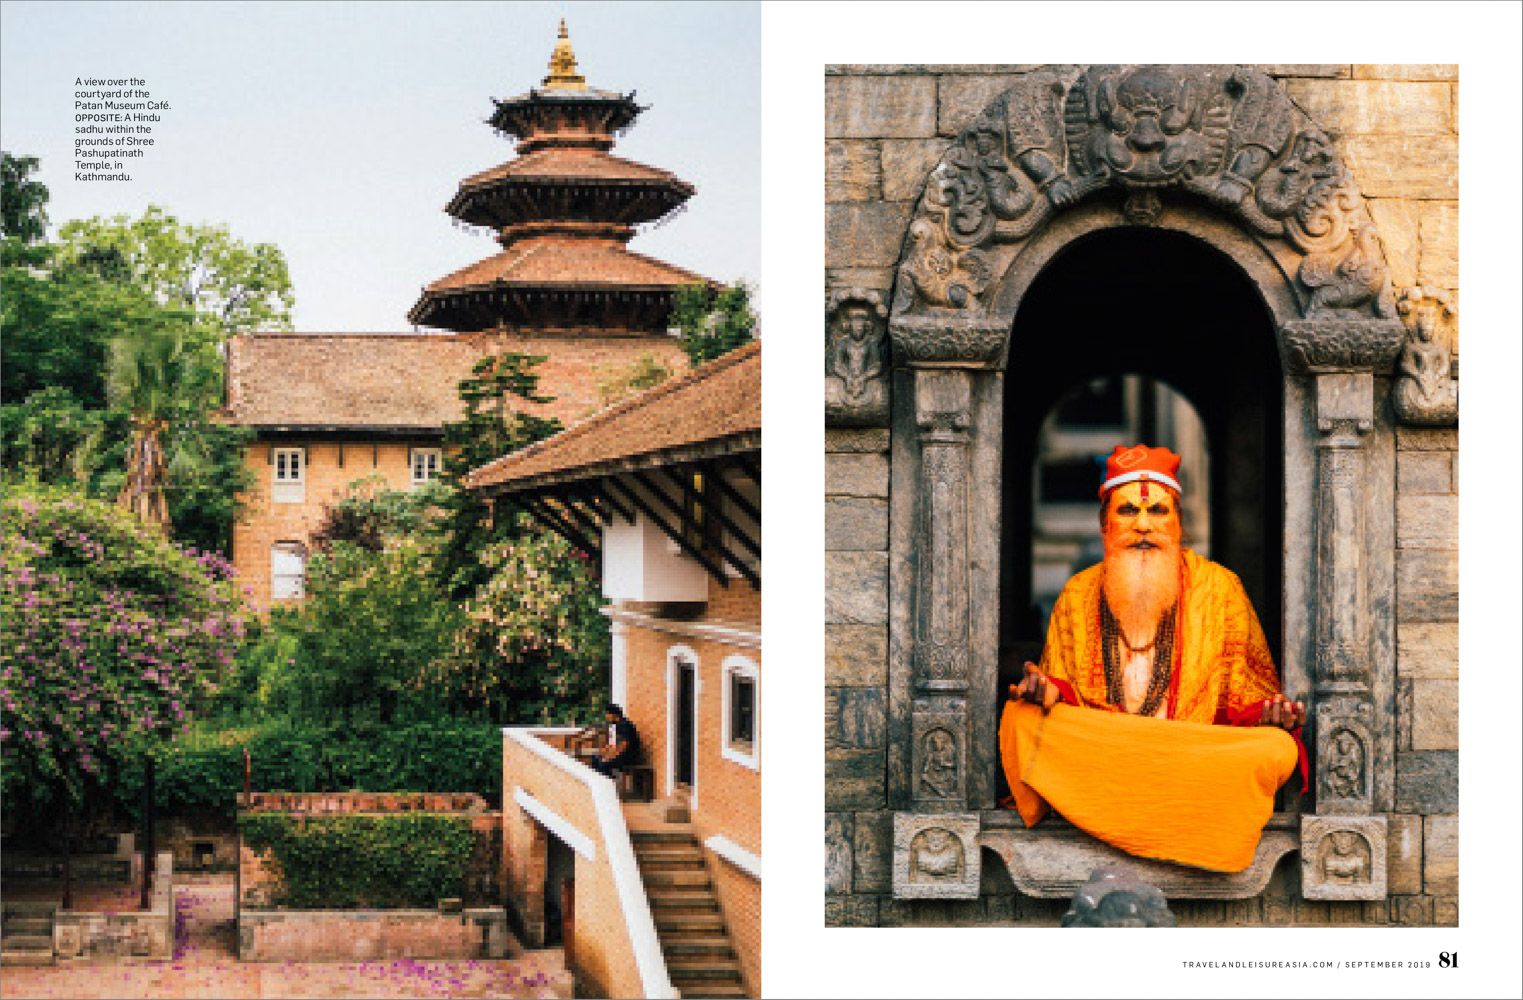 From an editorial travel story on the Kathmandu Valley in Nepal.